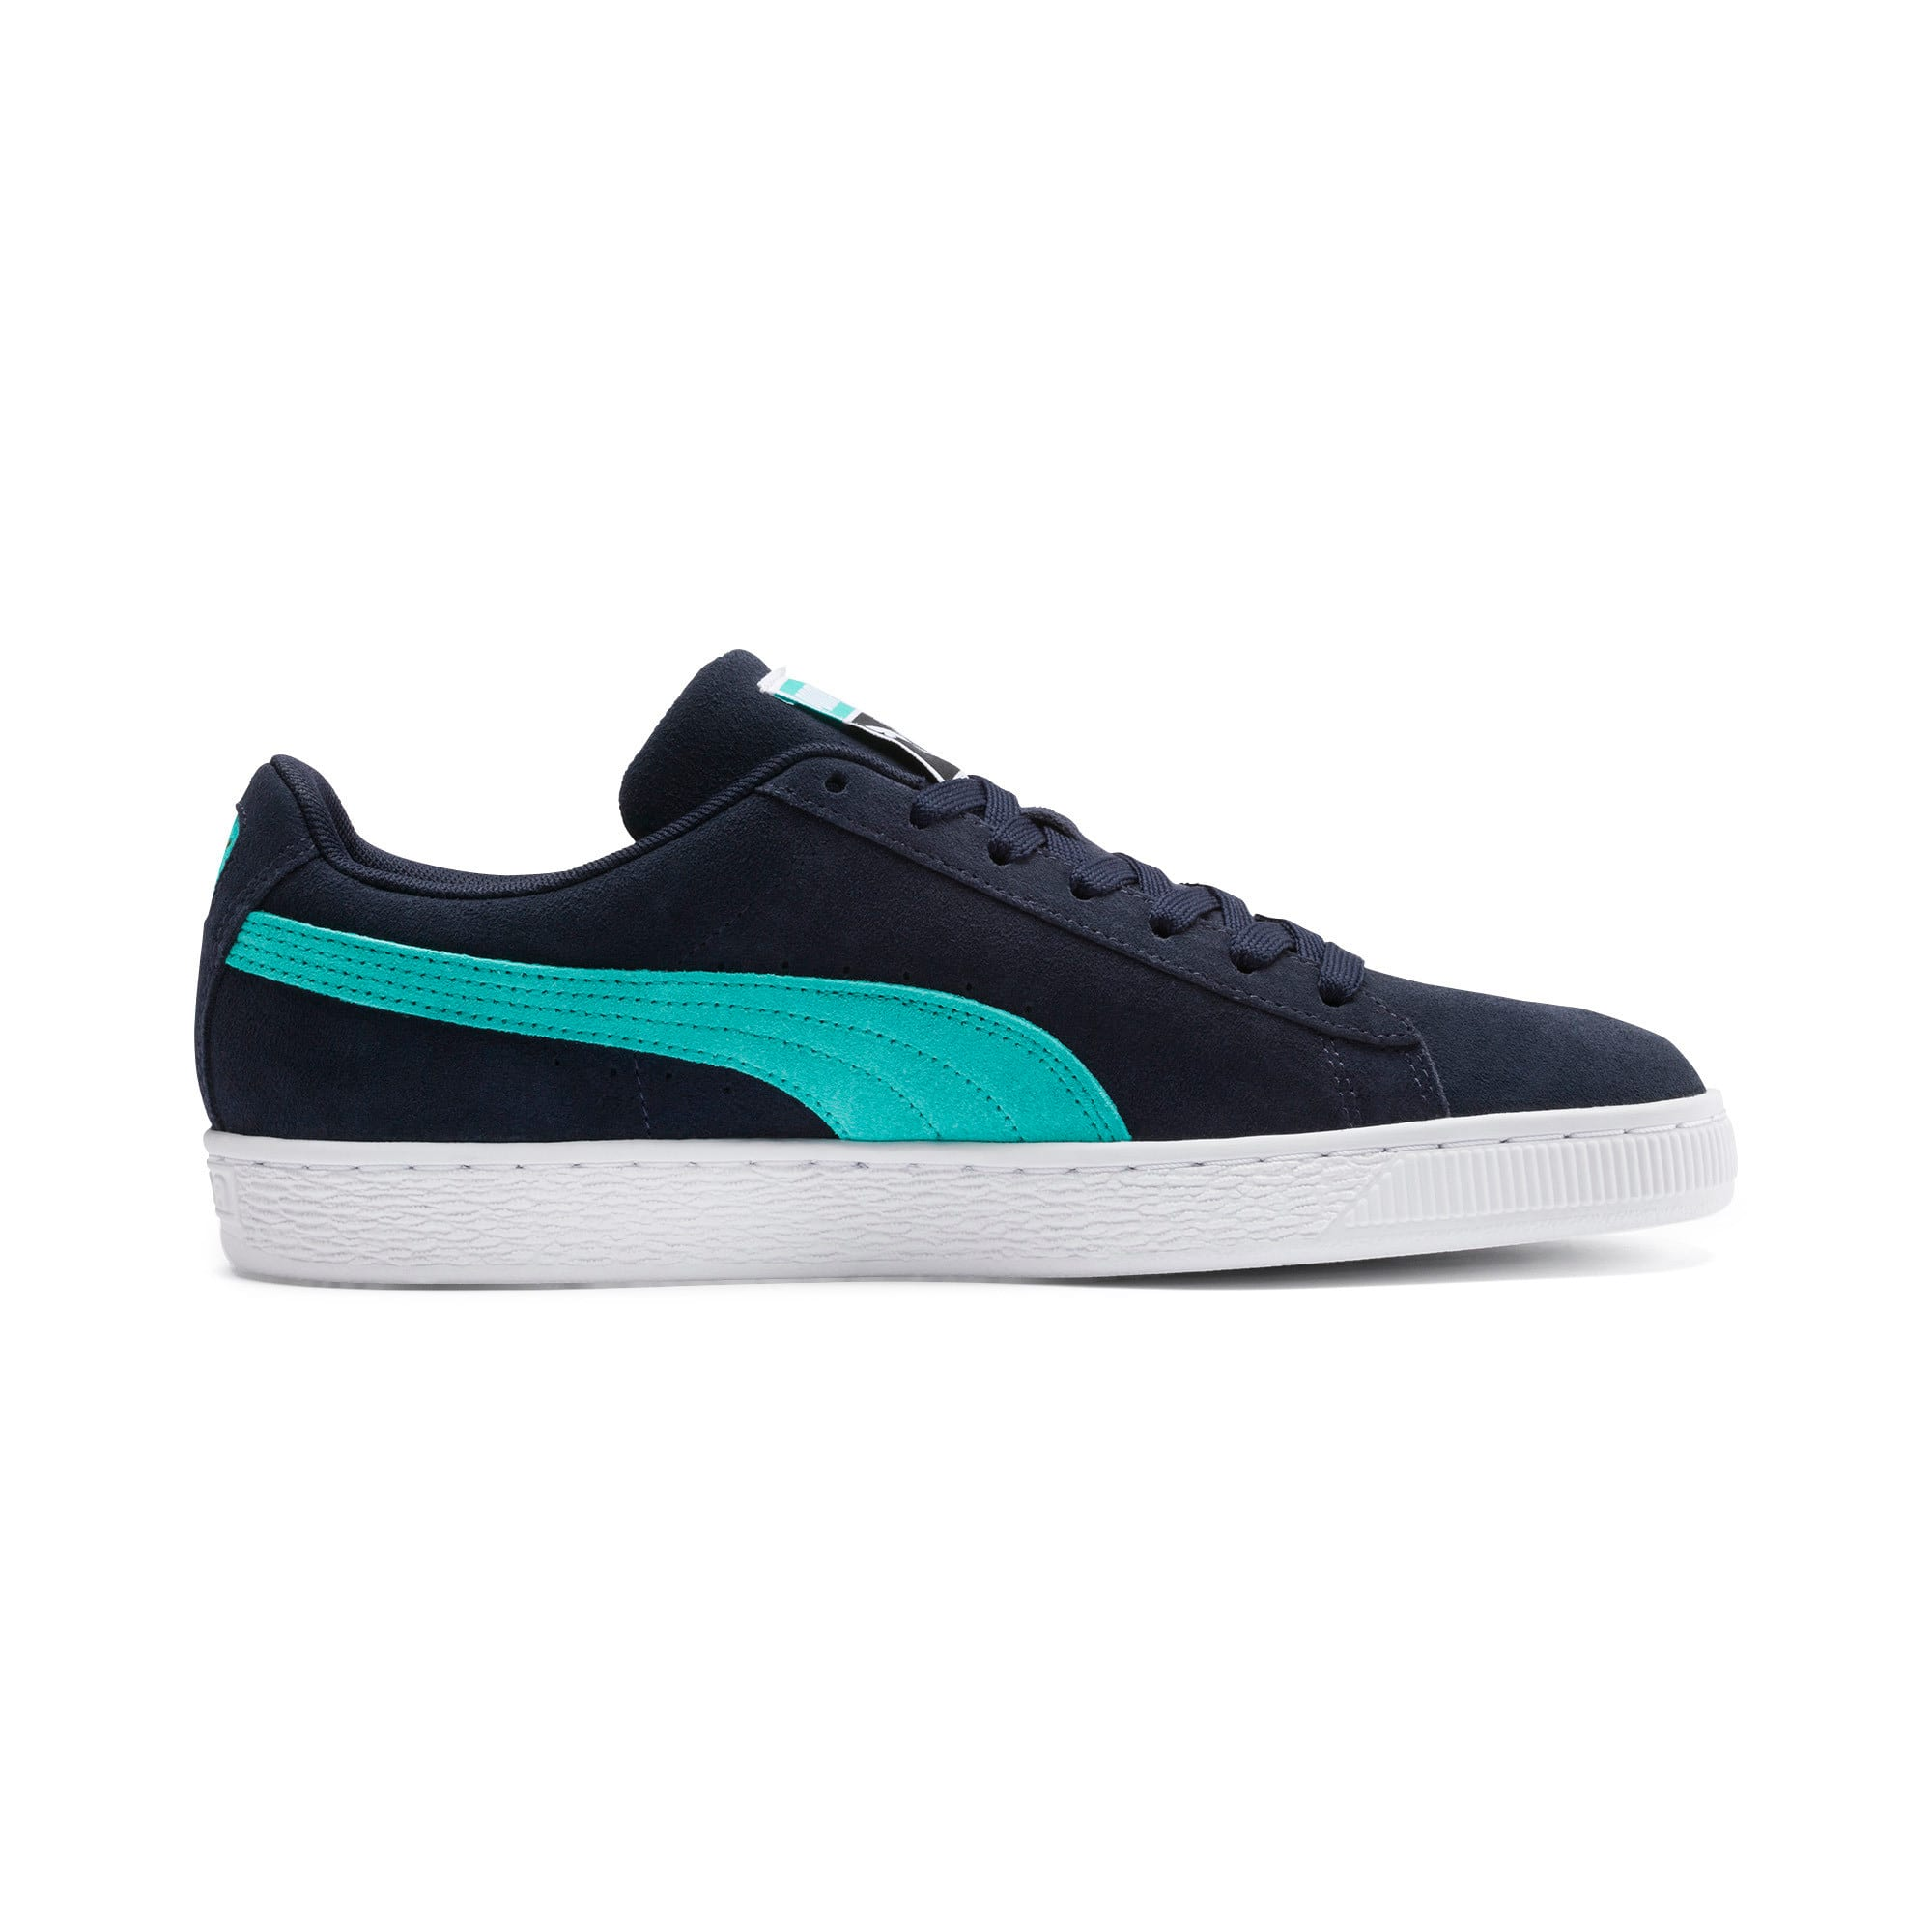 Thumbnail 6 of Suede Classic Trainers, Peacoat-Blue Turquoise-P Wht, medium